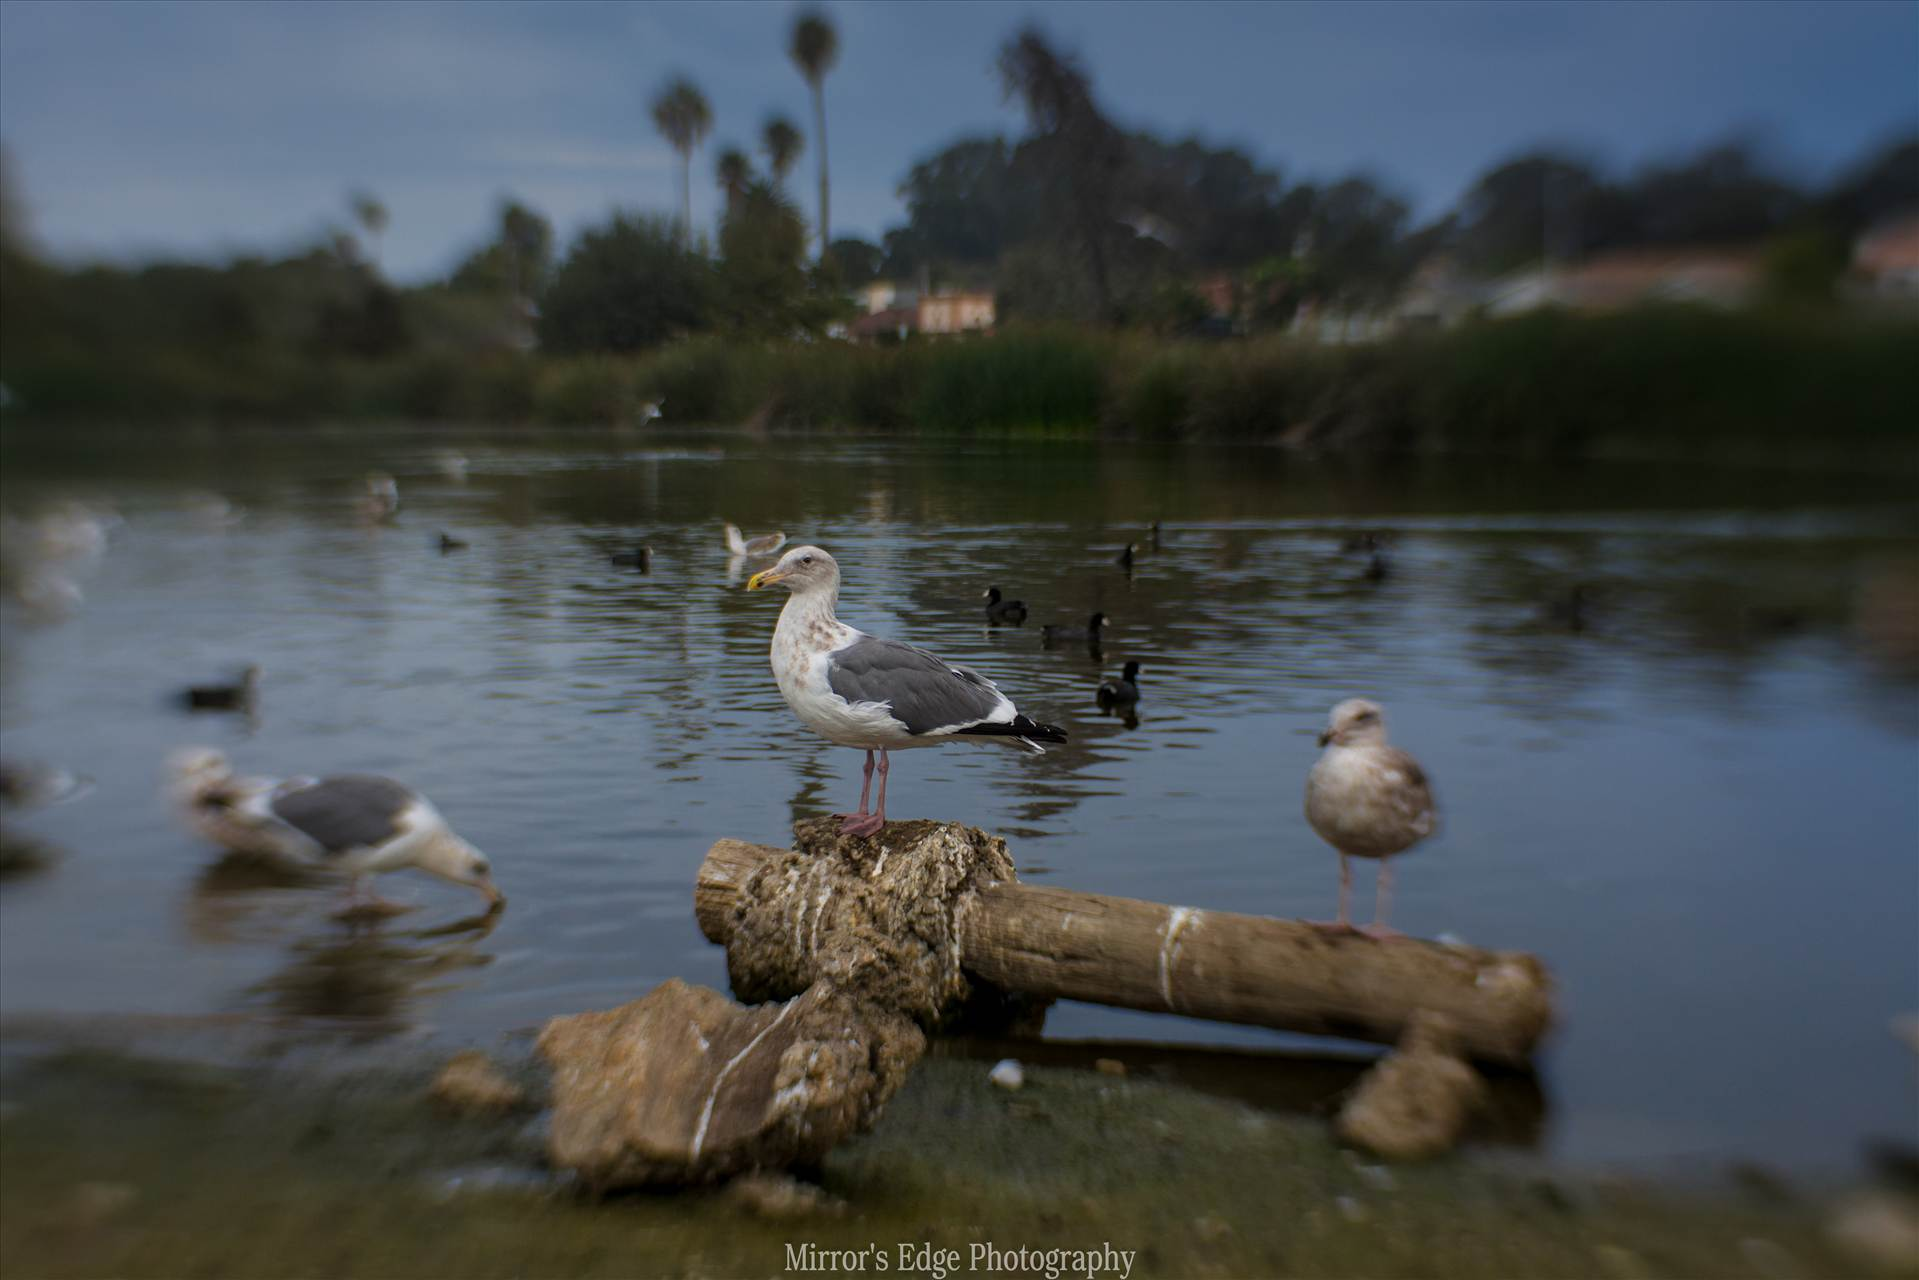 Misty Lagoon and Perching Gull.jpg undefined by Sarah Williams